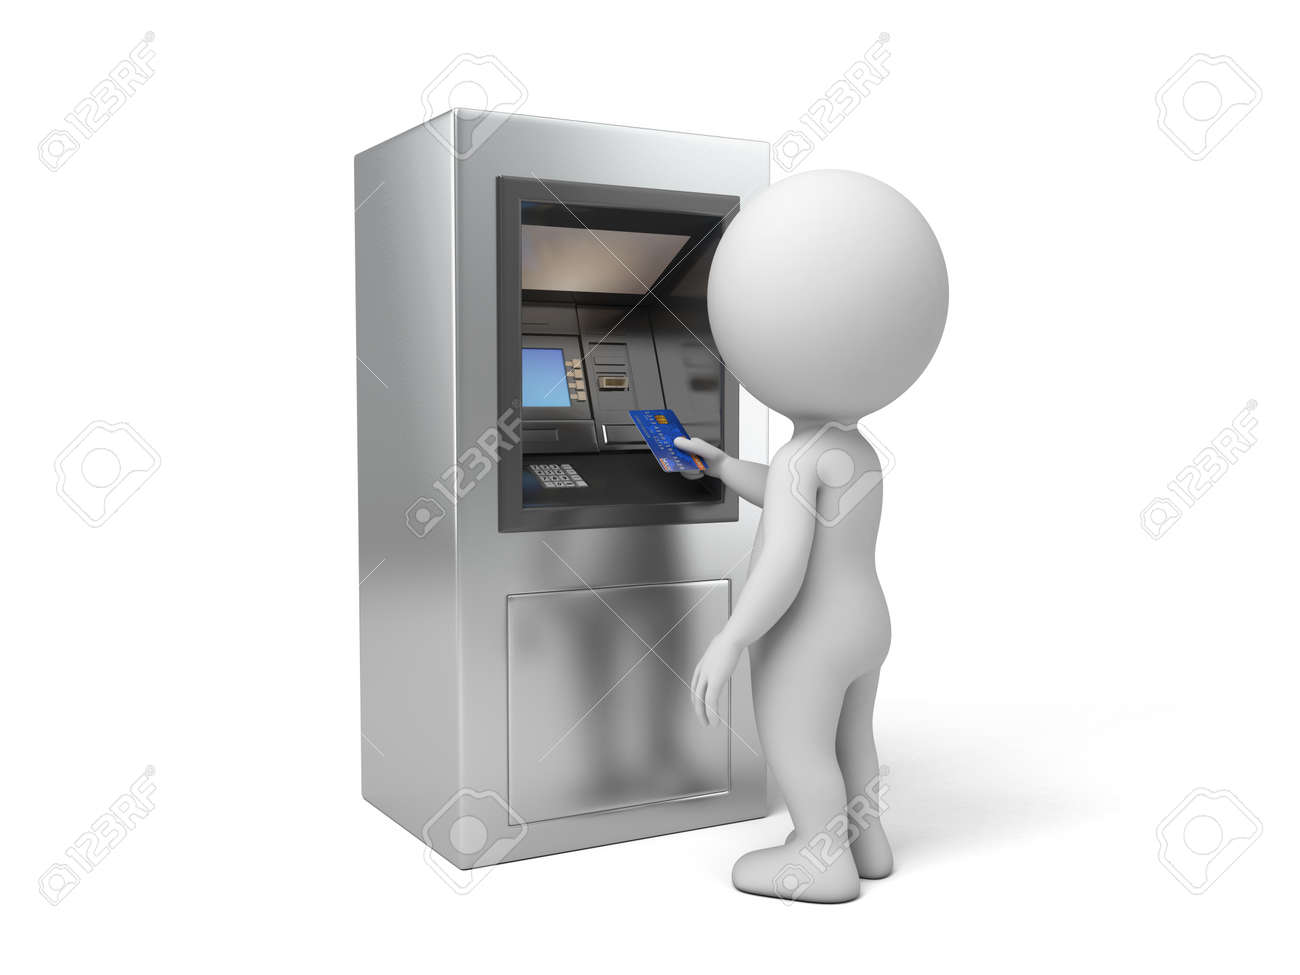 A 3d people with a ATM. 3d image. Isolated white background - 37817820